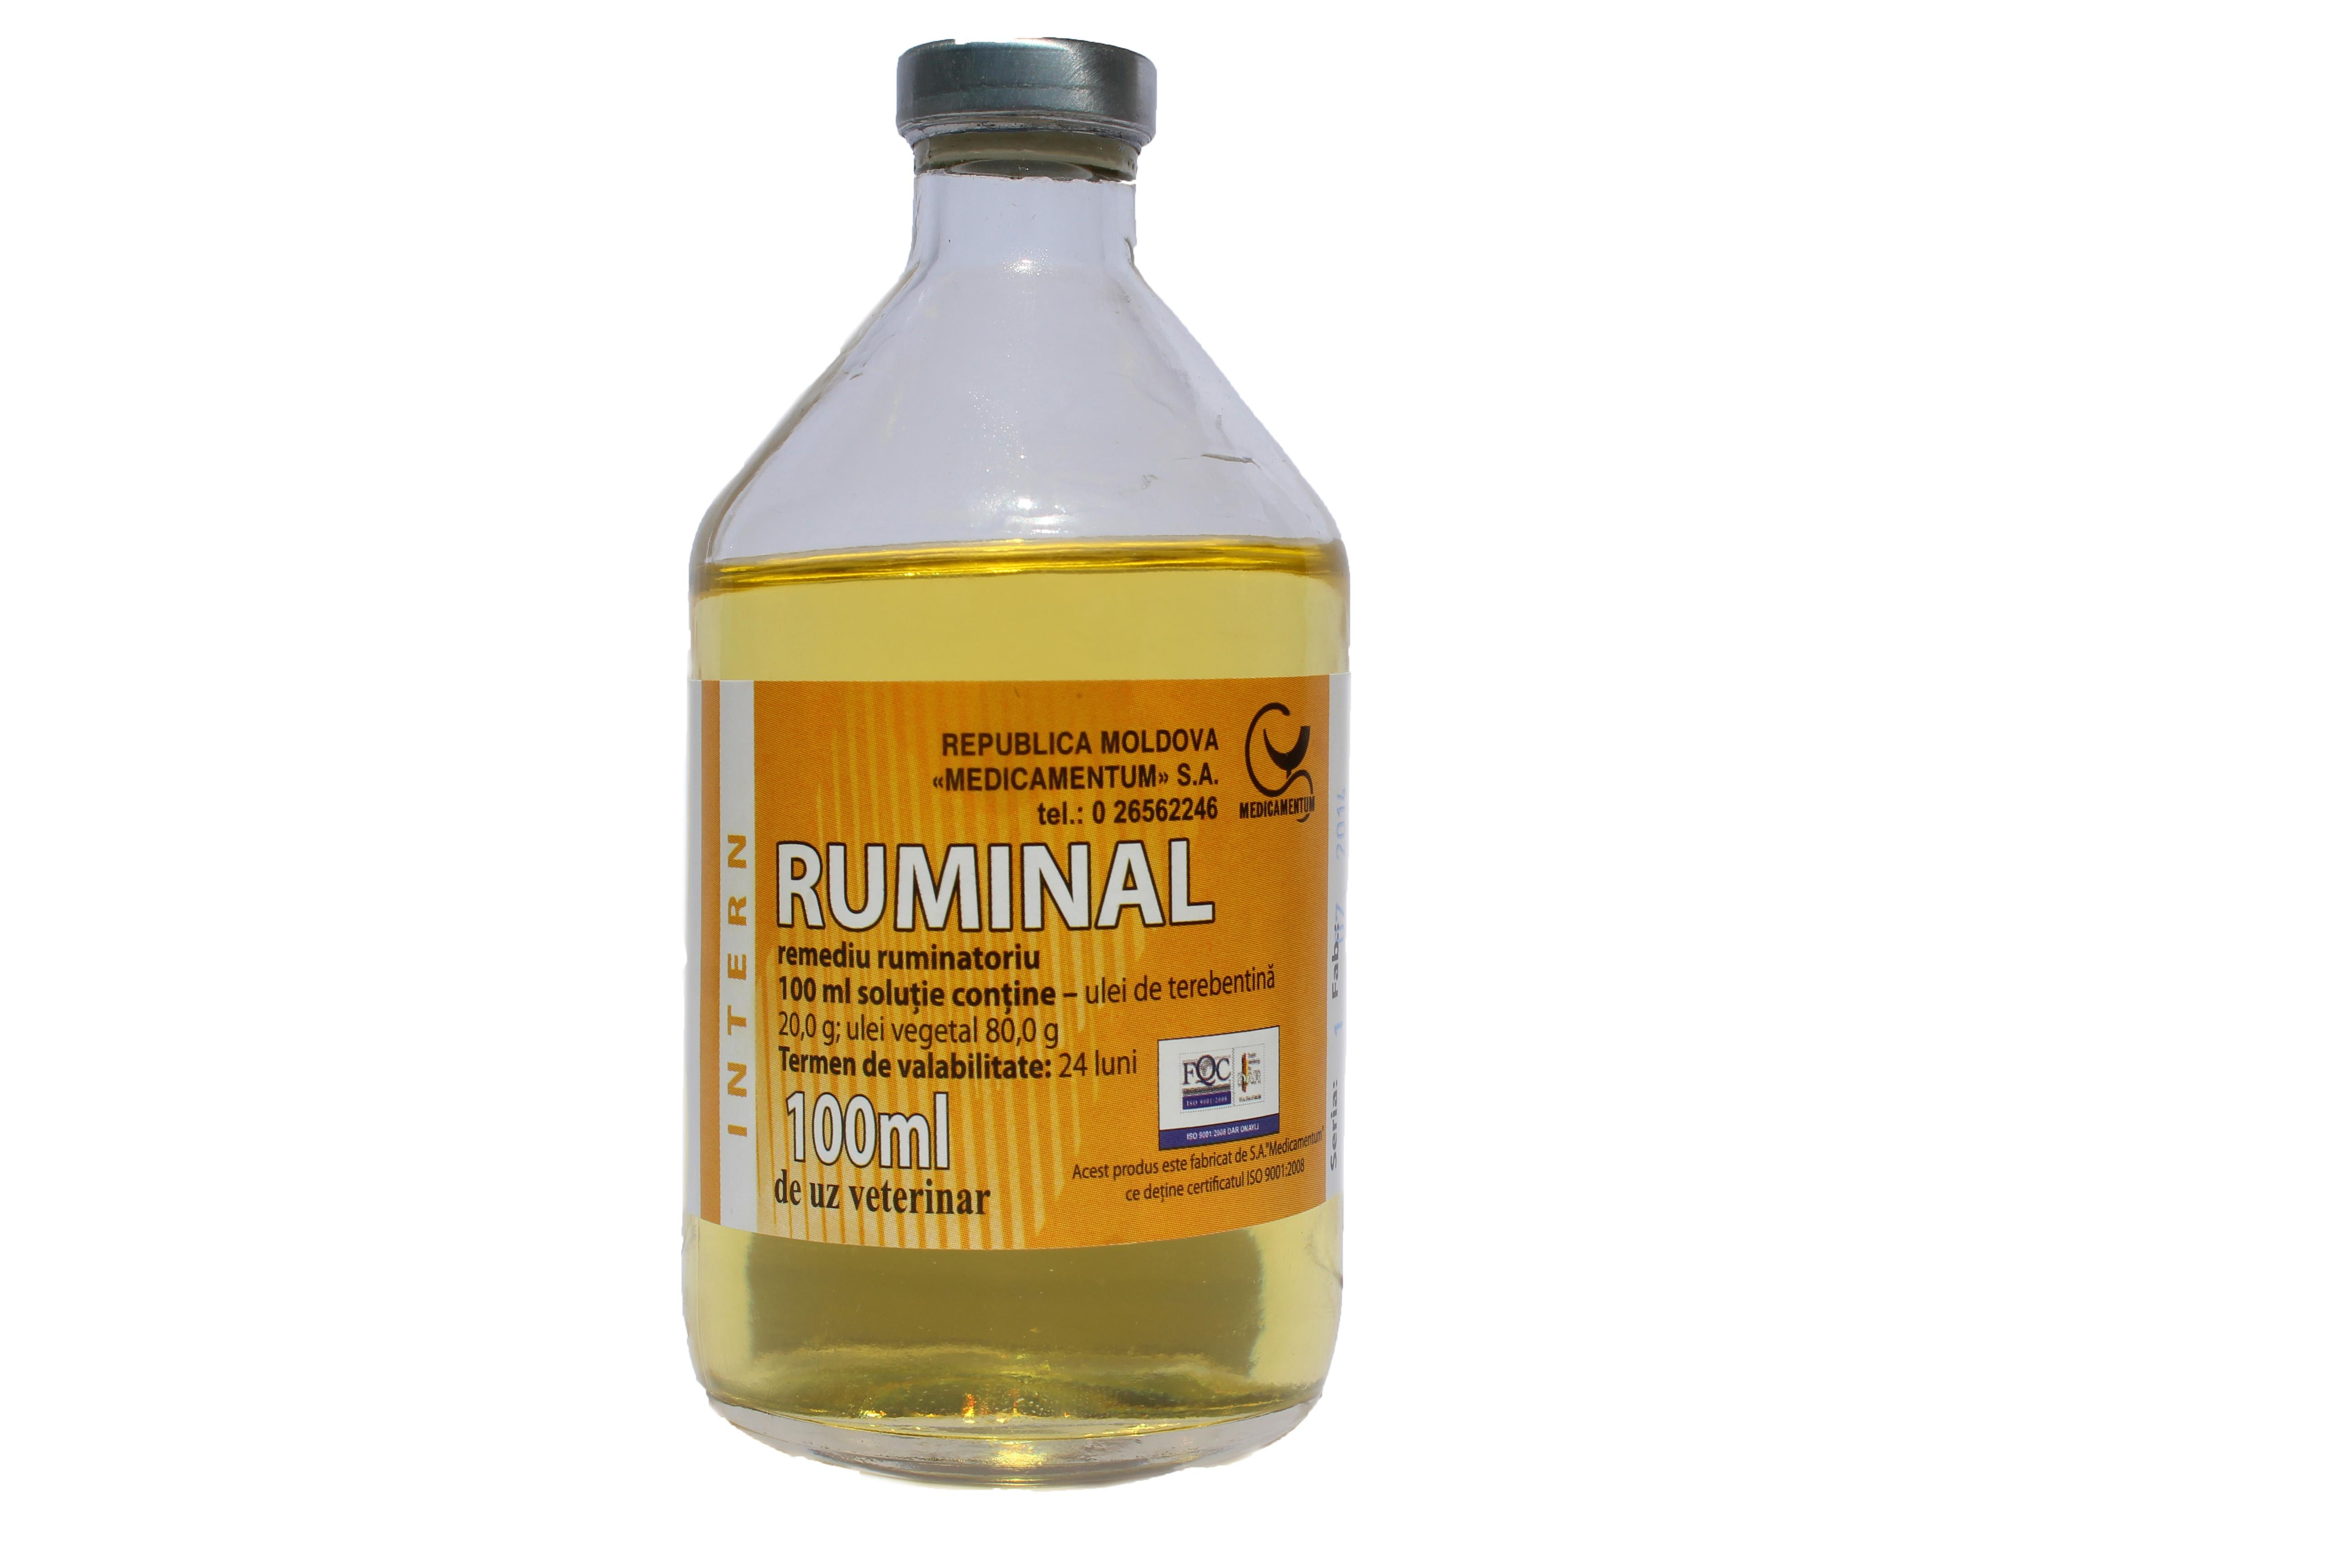 Ruminal medicamentum local goods made in moldova for Where to buy fish mox locally